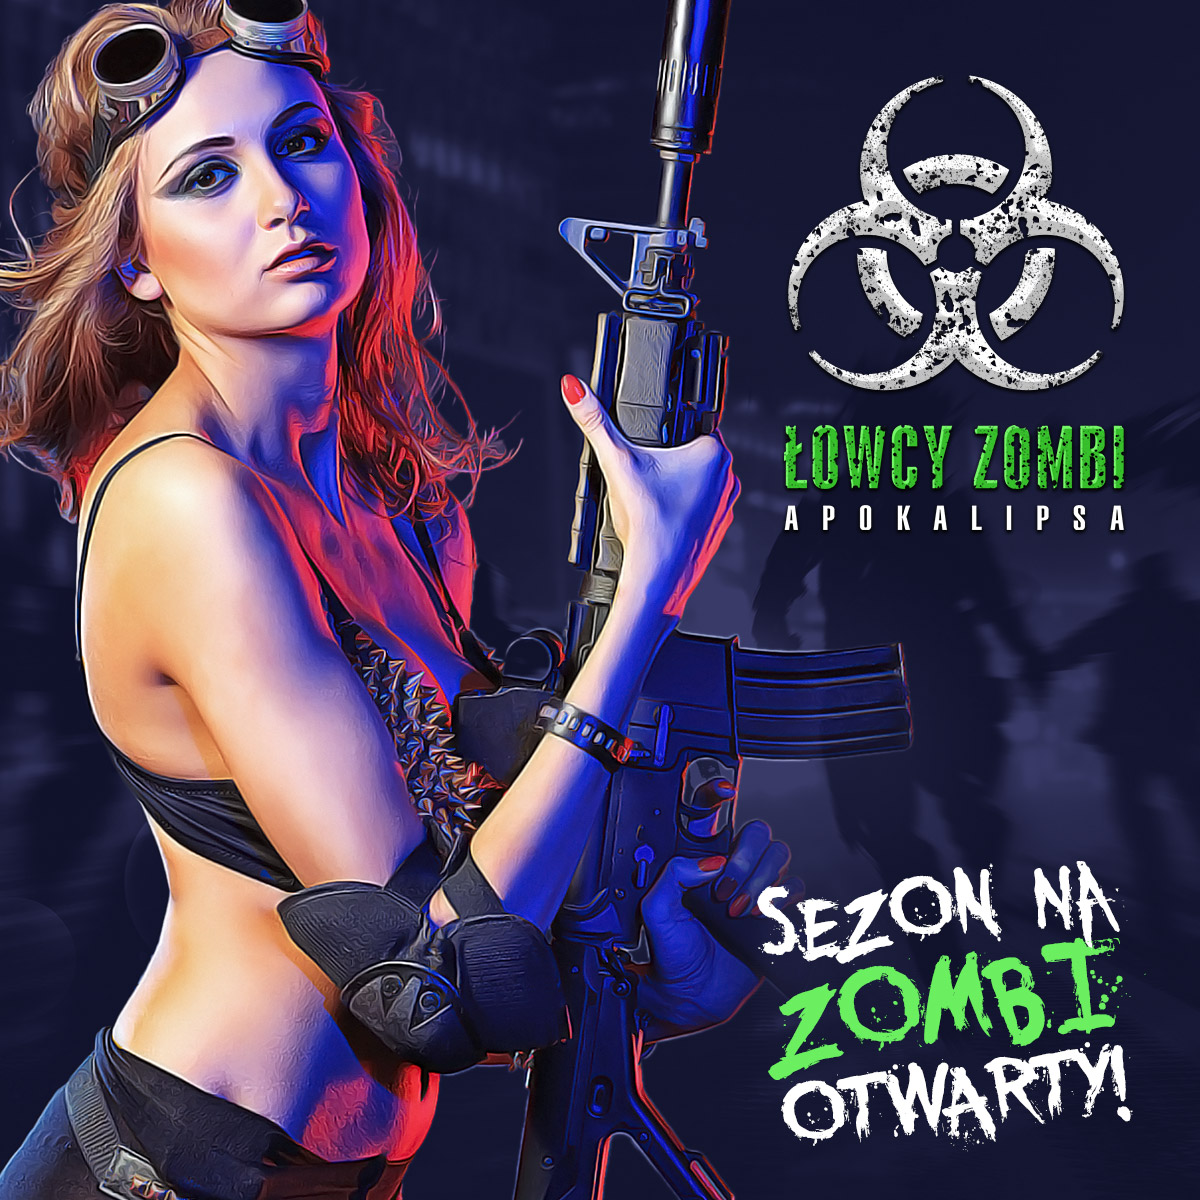 lowcy_zombi_1200x1200_iminfected_pl